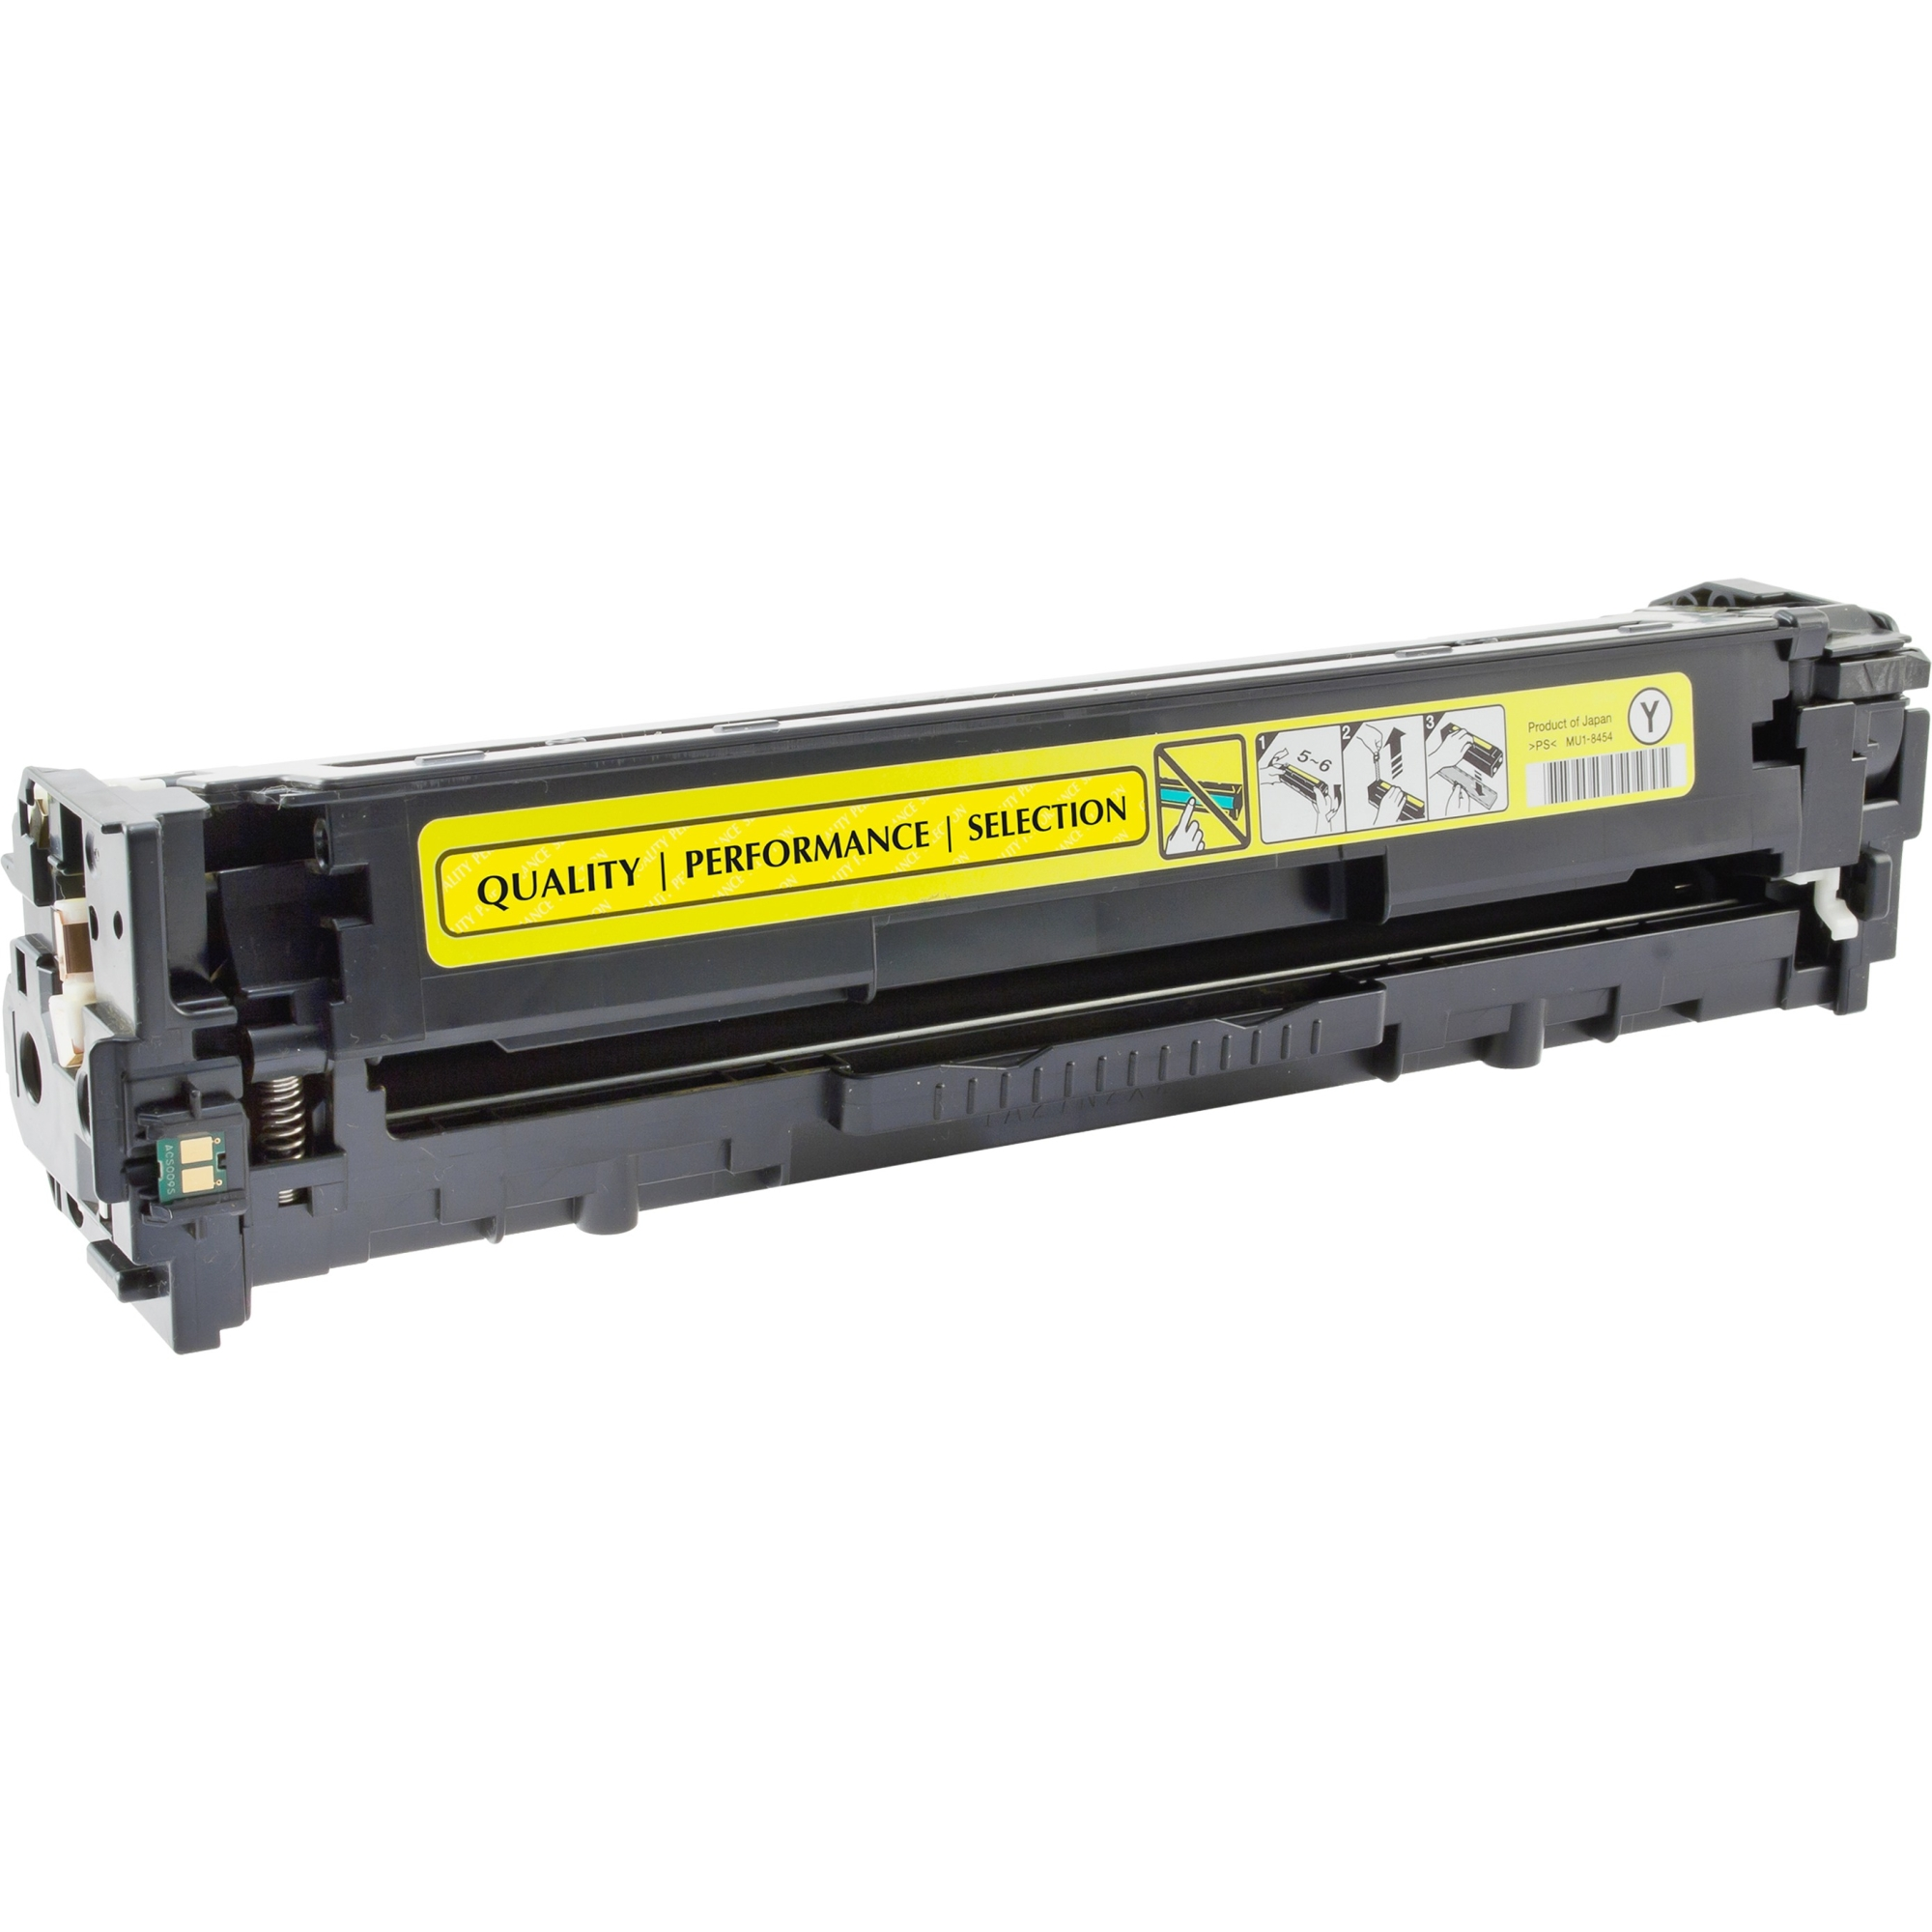 Toner Cartridge - Replacement for HP (CE322A) - Yellow - Laser - 1300 Page